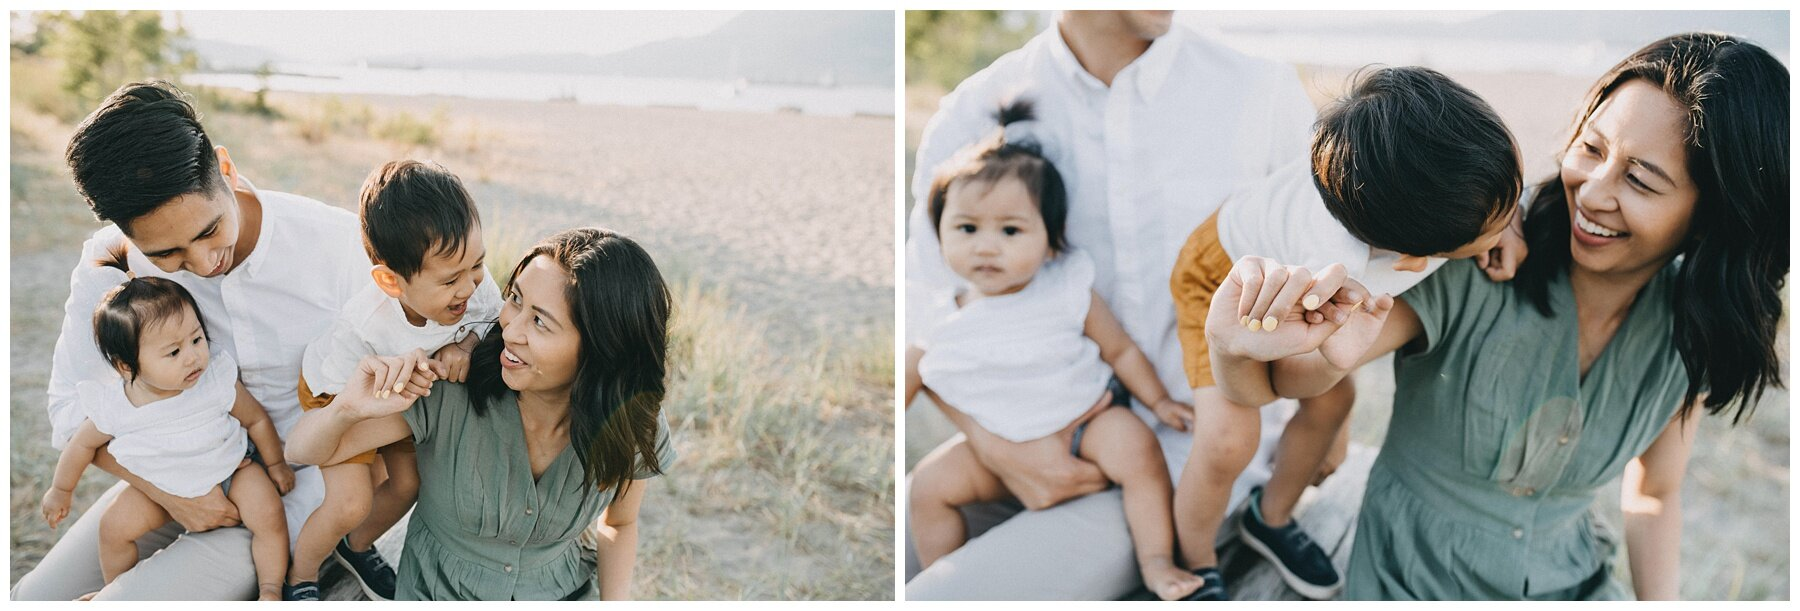 Vancouver Family Photographer || Jericho Beach Vancouver Family Photos_1285.jpg